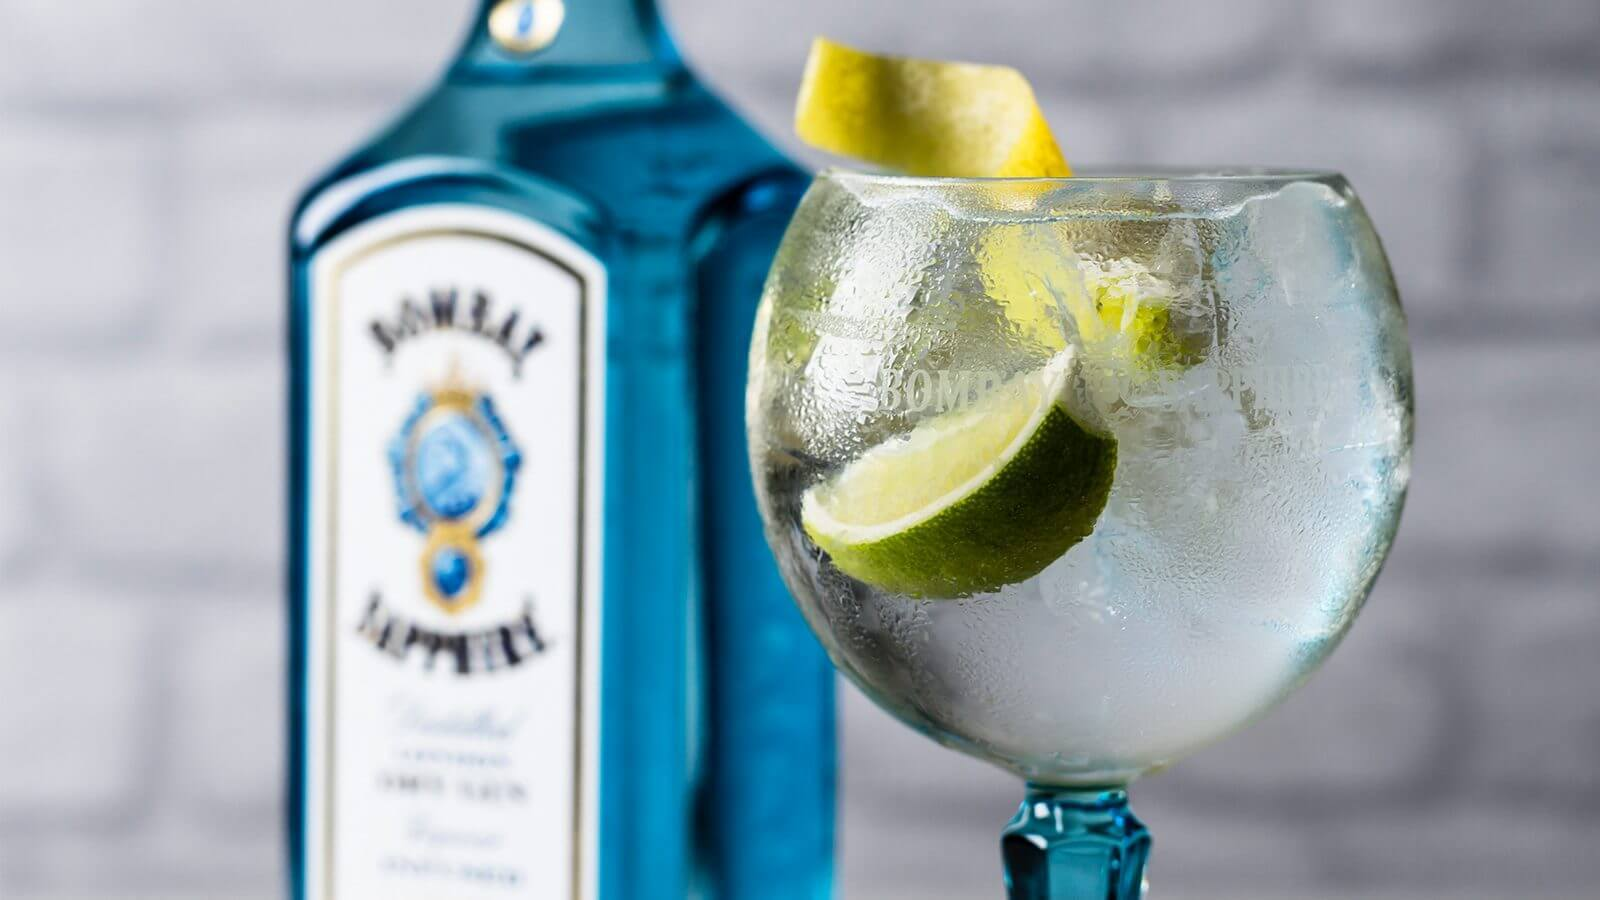 How Many Calories are in a Gin and Tonic? Obviously, that's a loaded question since all gin and tonics are not made equally. If we use a breakdown of 6 ounces tonic and 2 ounces of 94 proof gin (a ratio poured into a highball glass), its yields calories.